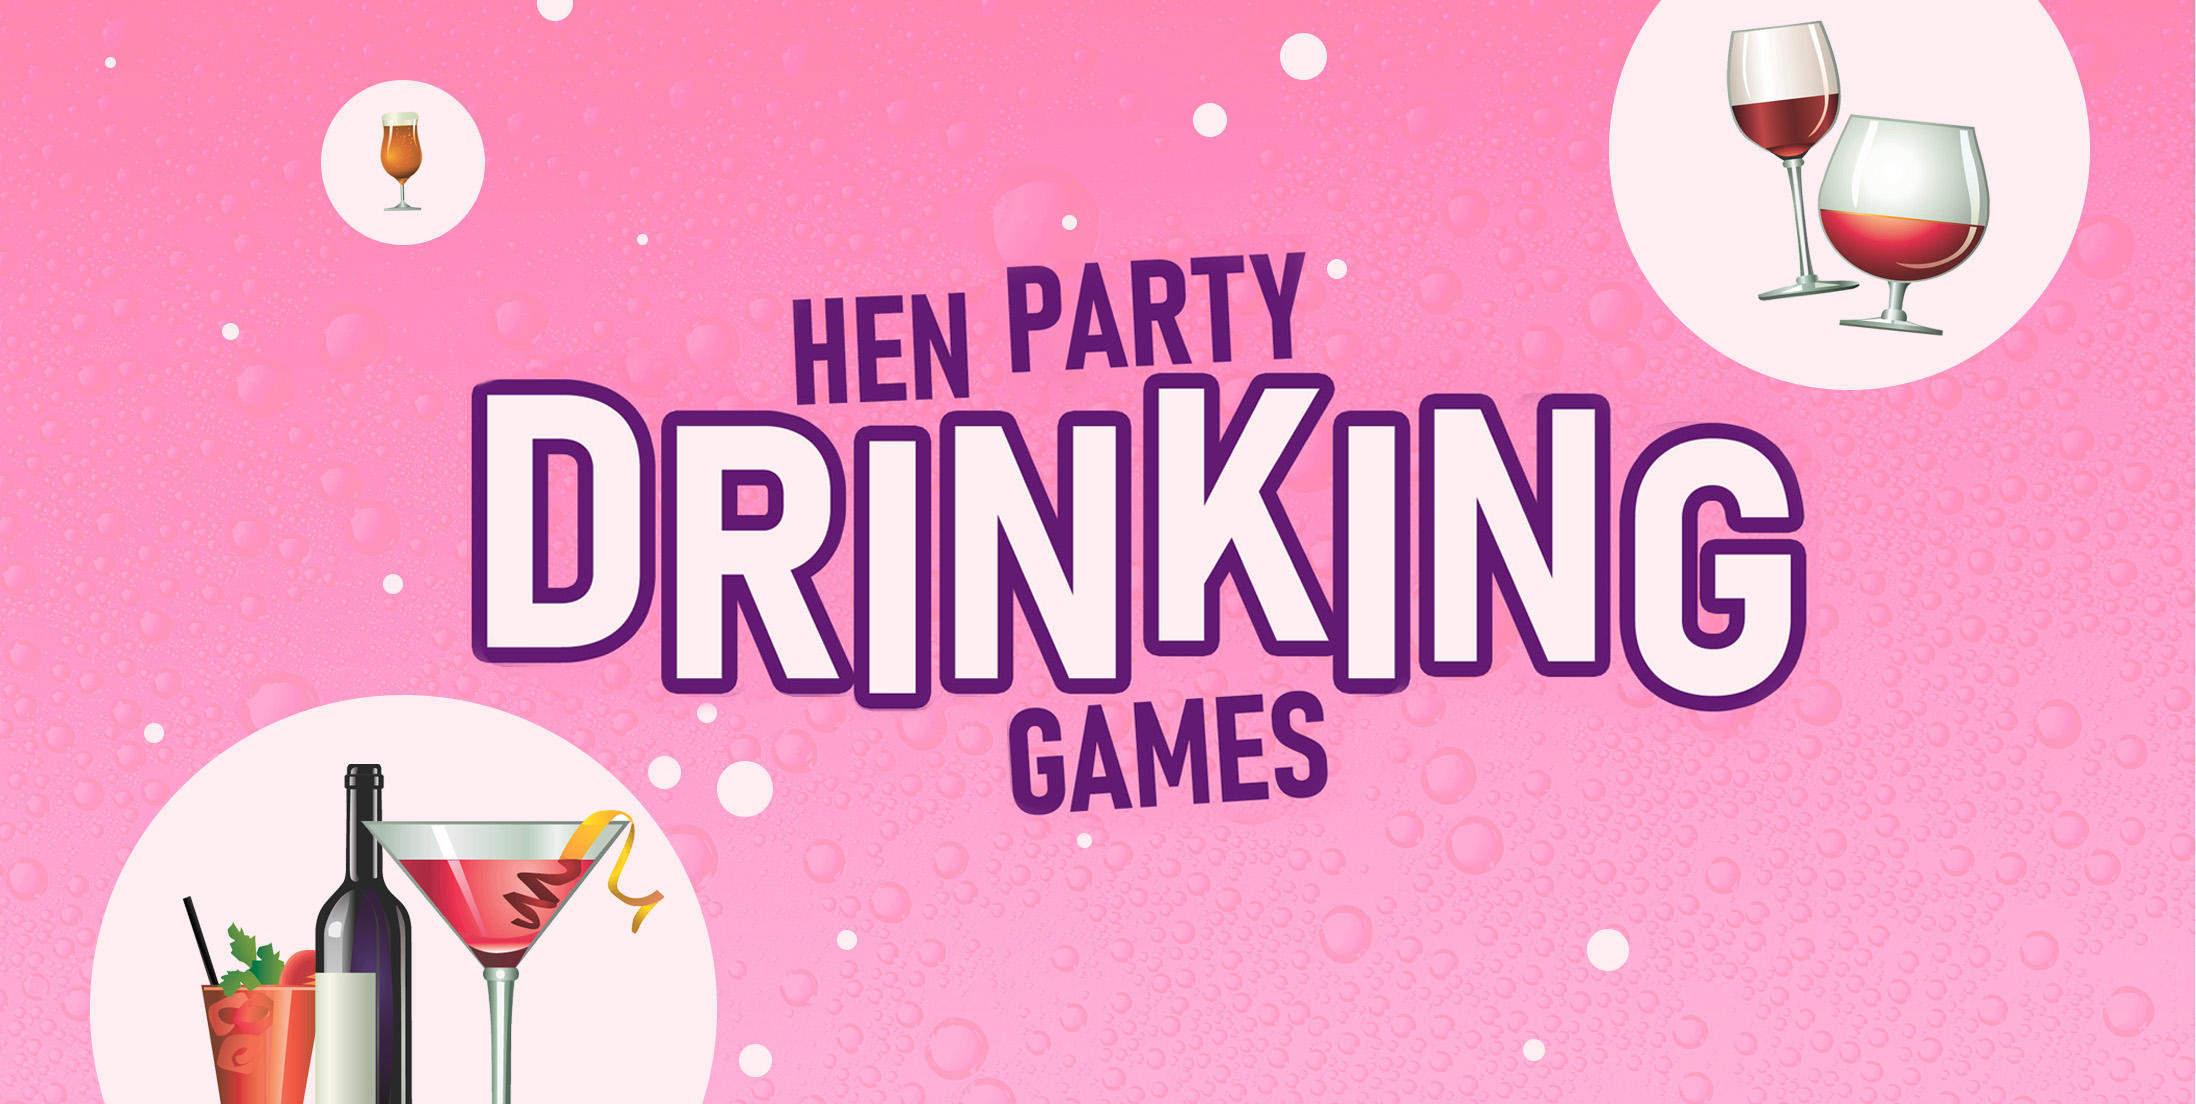 Hen Party Drinking Games for Your Hens Night